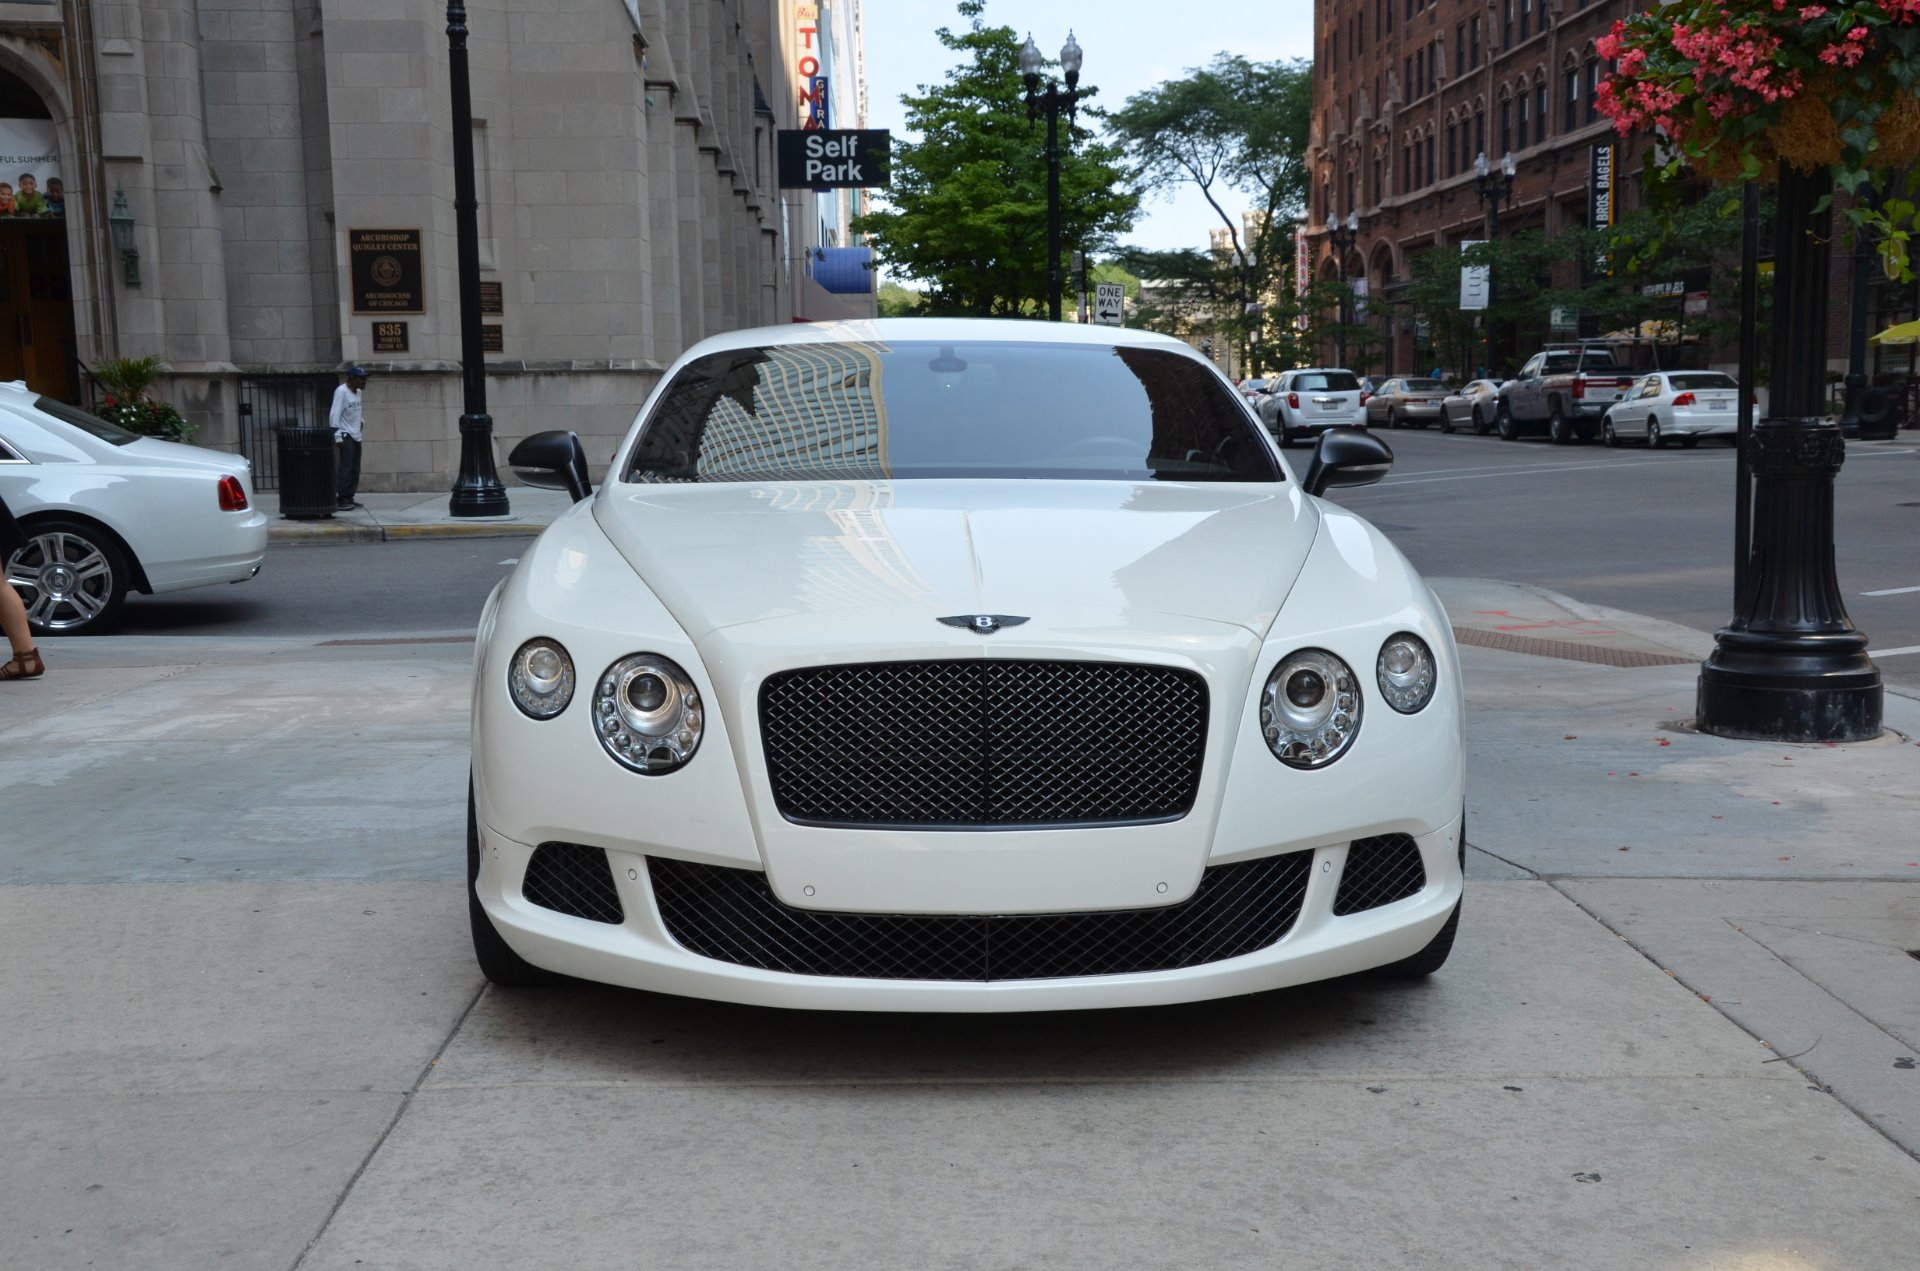 2013 bentley continental gt speed stock r296aa for sale near chicago il il bentley dealer. Black Bedroom Furniture Sets. Home Design Ideas